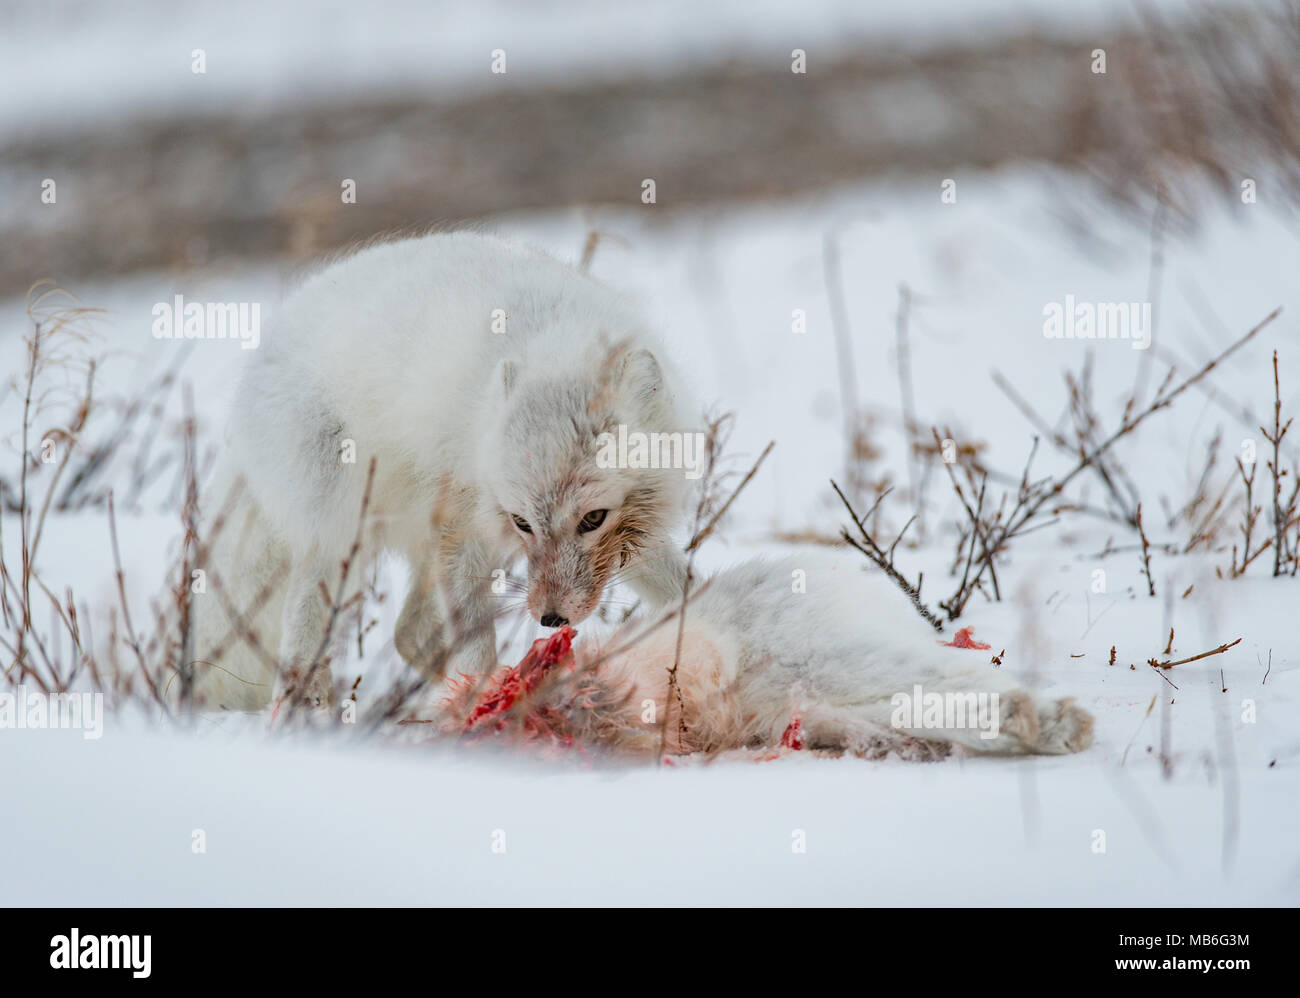 Cannibalism. Arctic Fox eating another Arctic Fox. - Stock Image